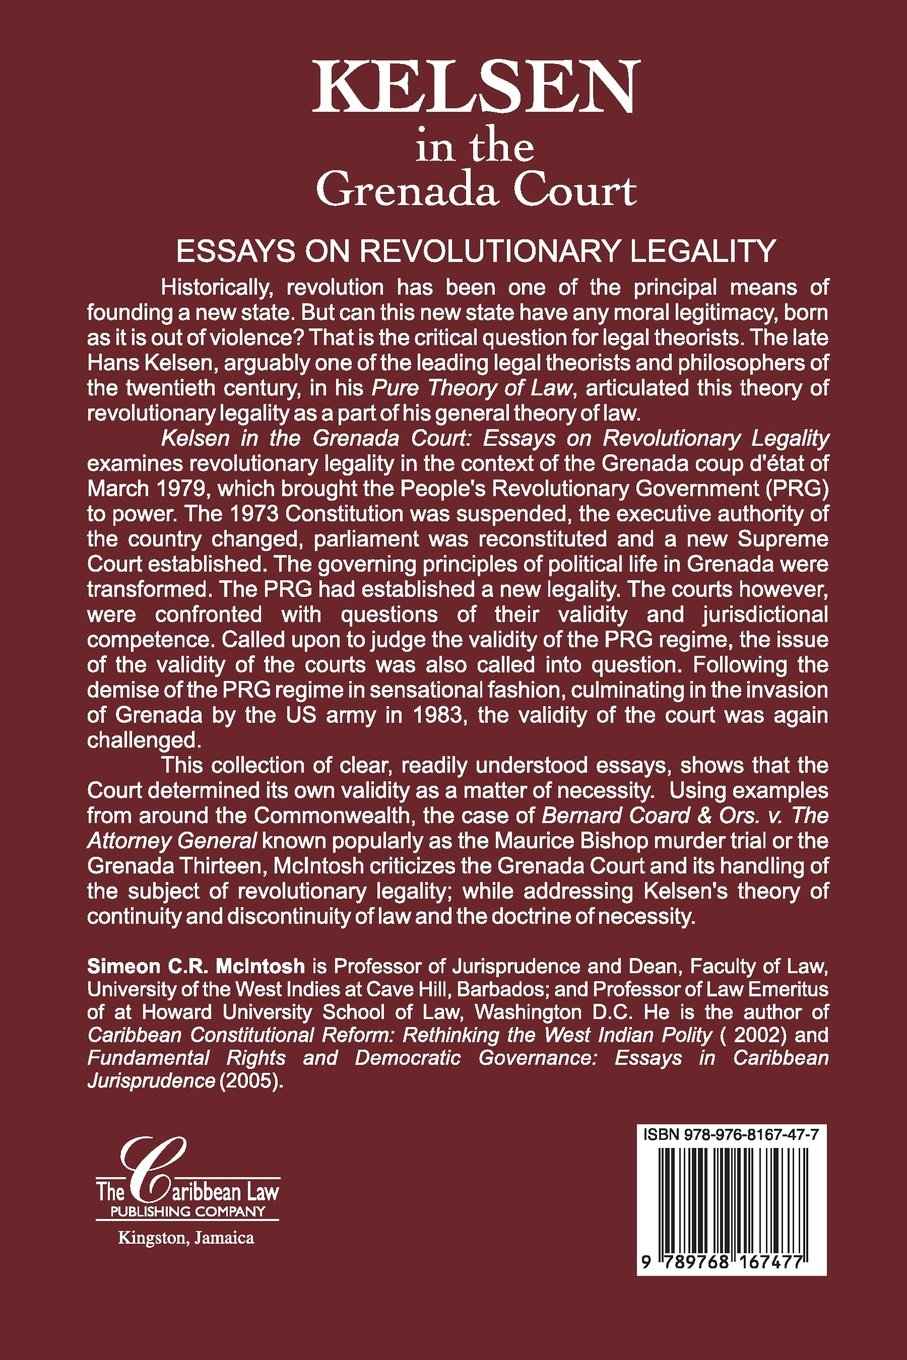 kelsen in the court essays on revolutionary legality kelsen in the court essays on revolutionary legality simeon c r mcintosh 9789768167477 com books